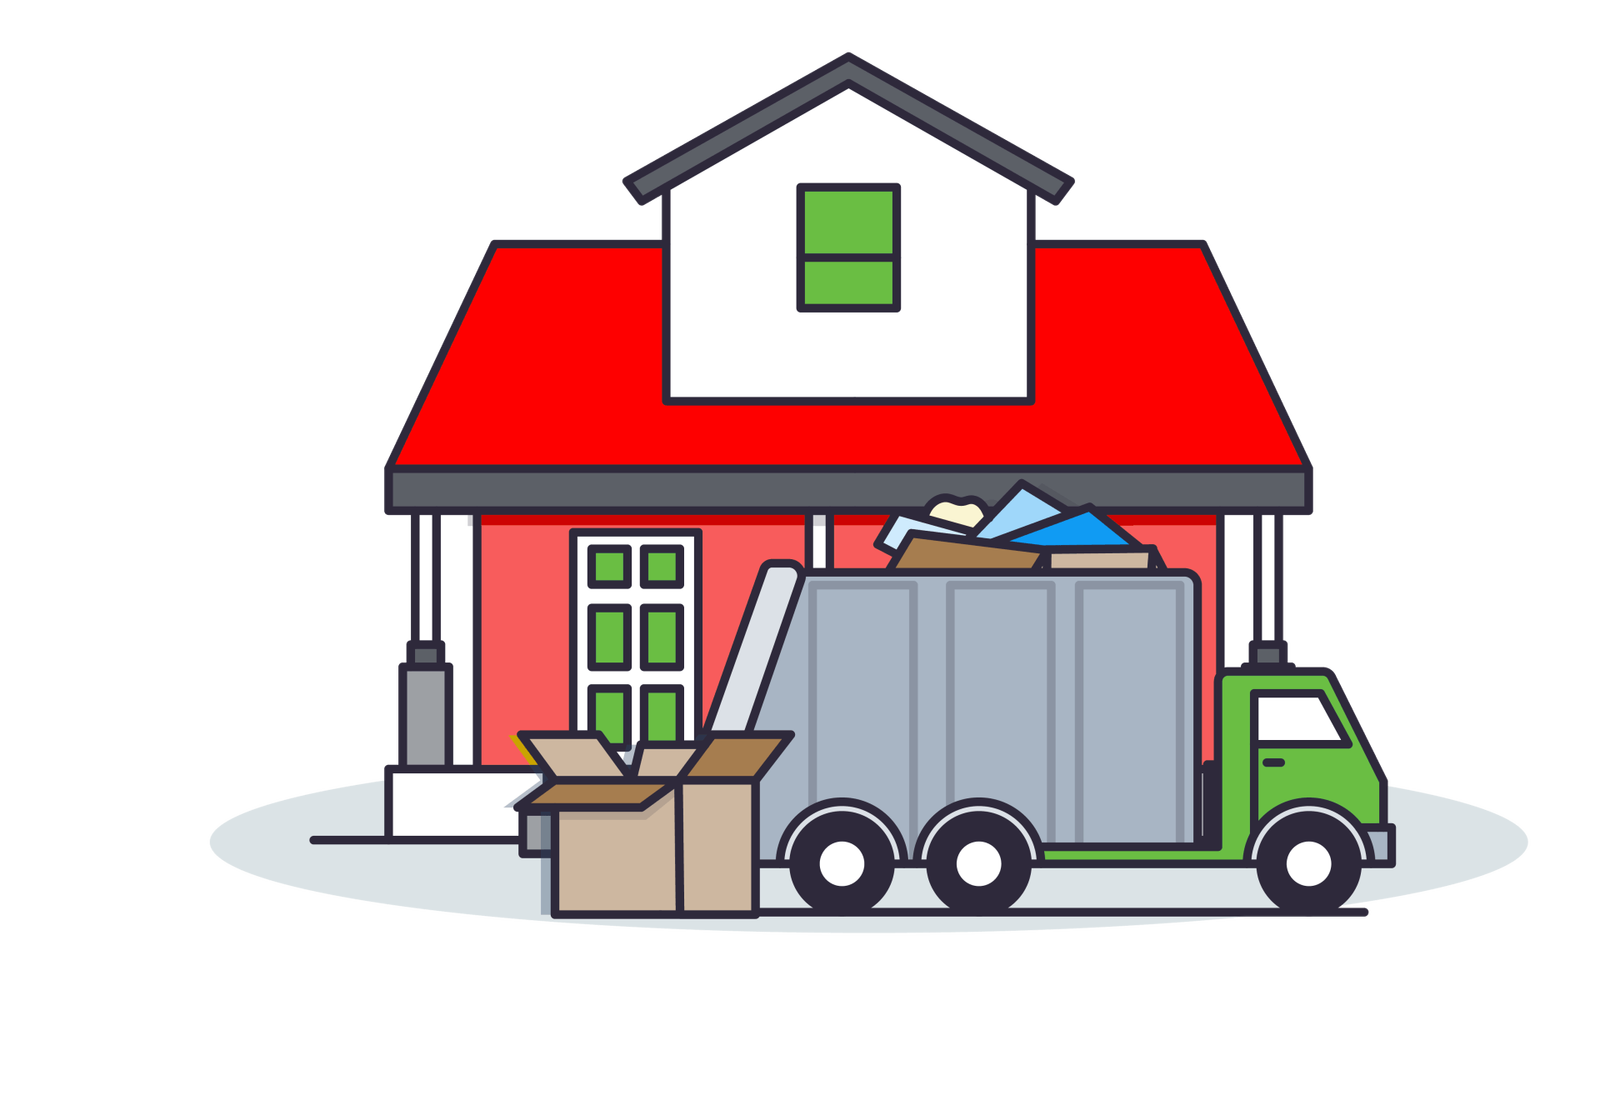 How to Choose an Expert Property Clean Outs in Atlanta